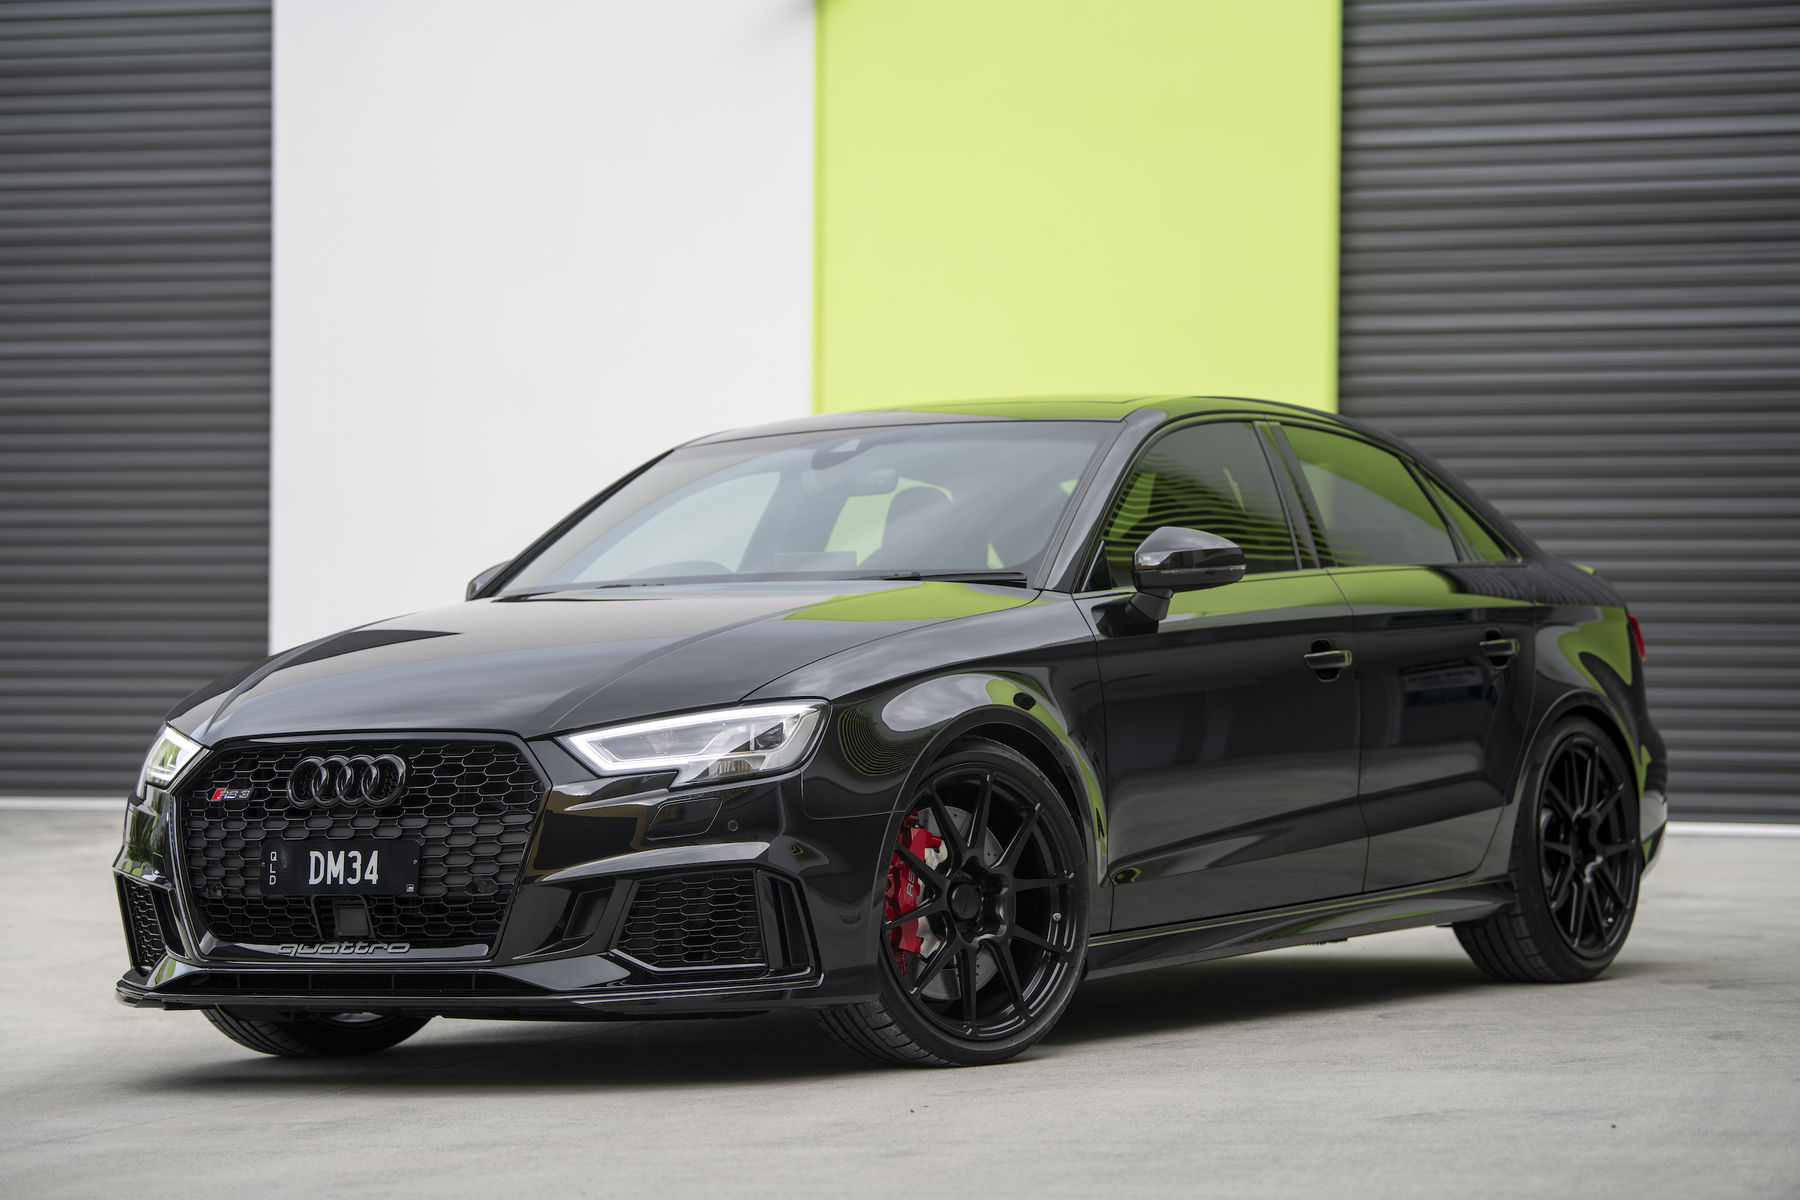 2018 Audi RS 3 | Dave Dessent's Audi RS3 on Forgeline One Piece Forged Monoblock GA1R Open Lug Wheels